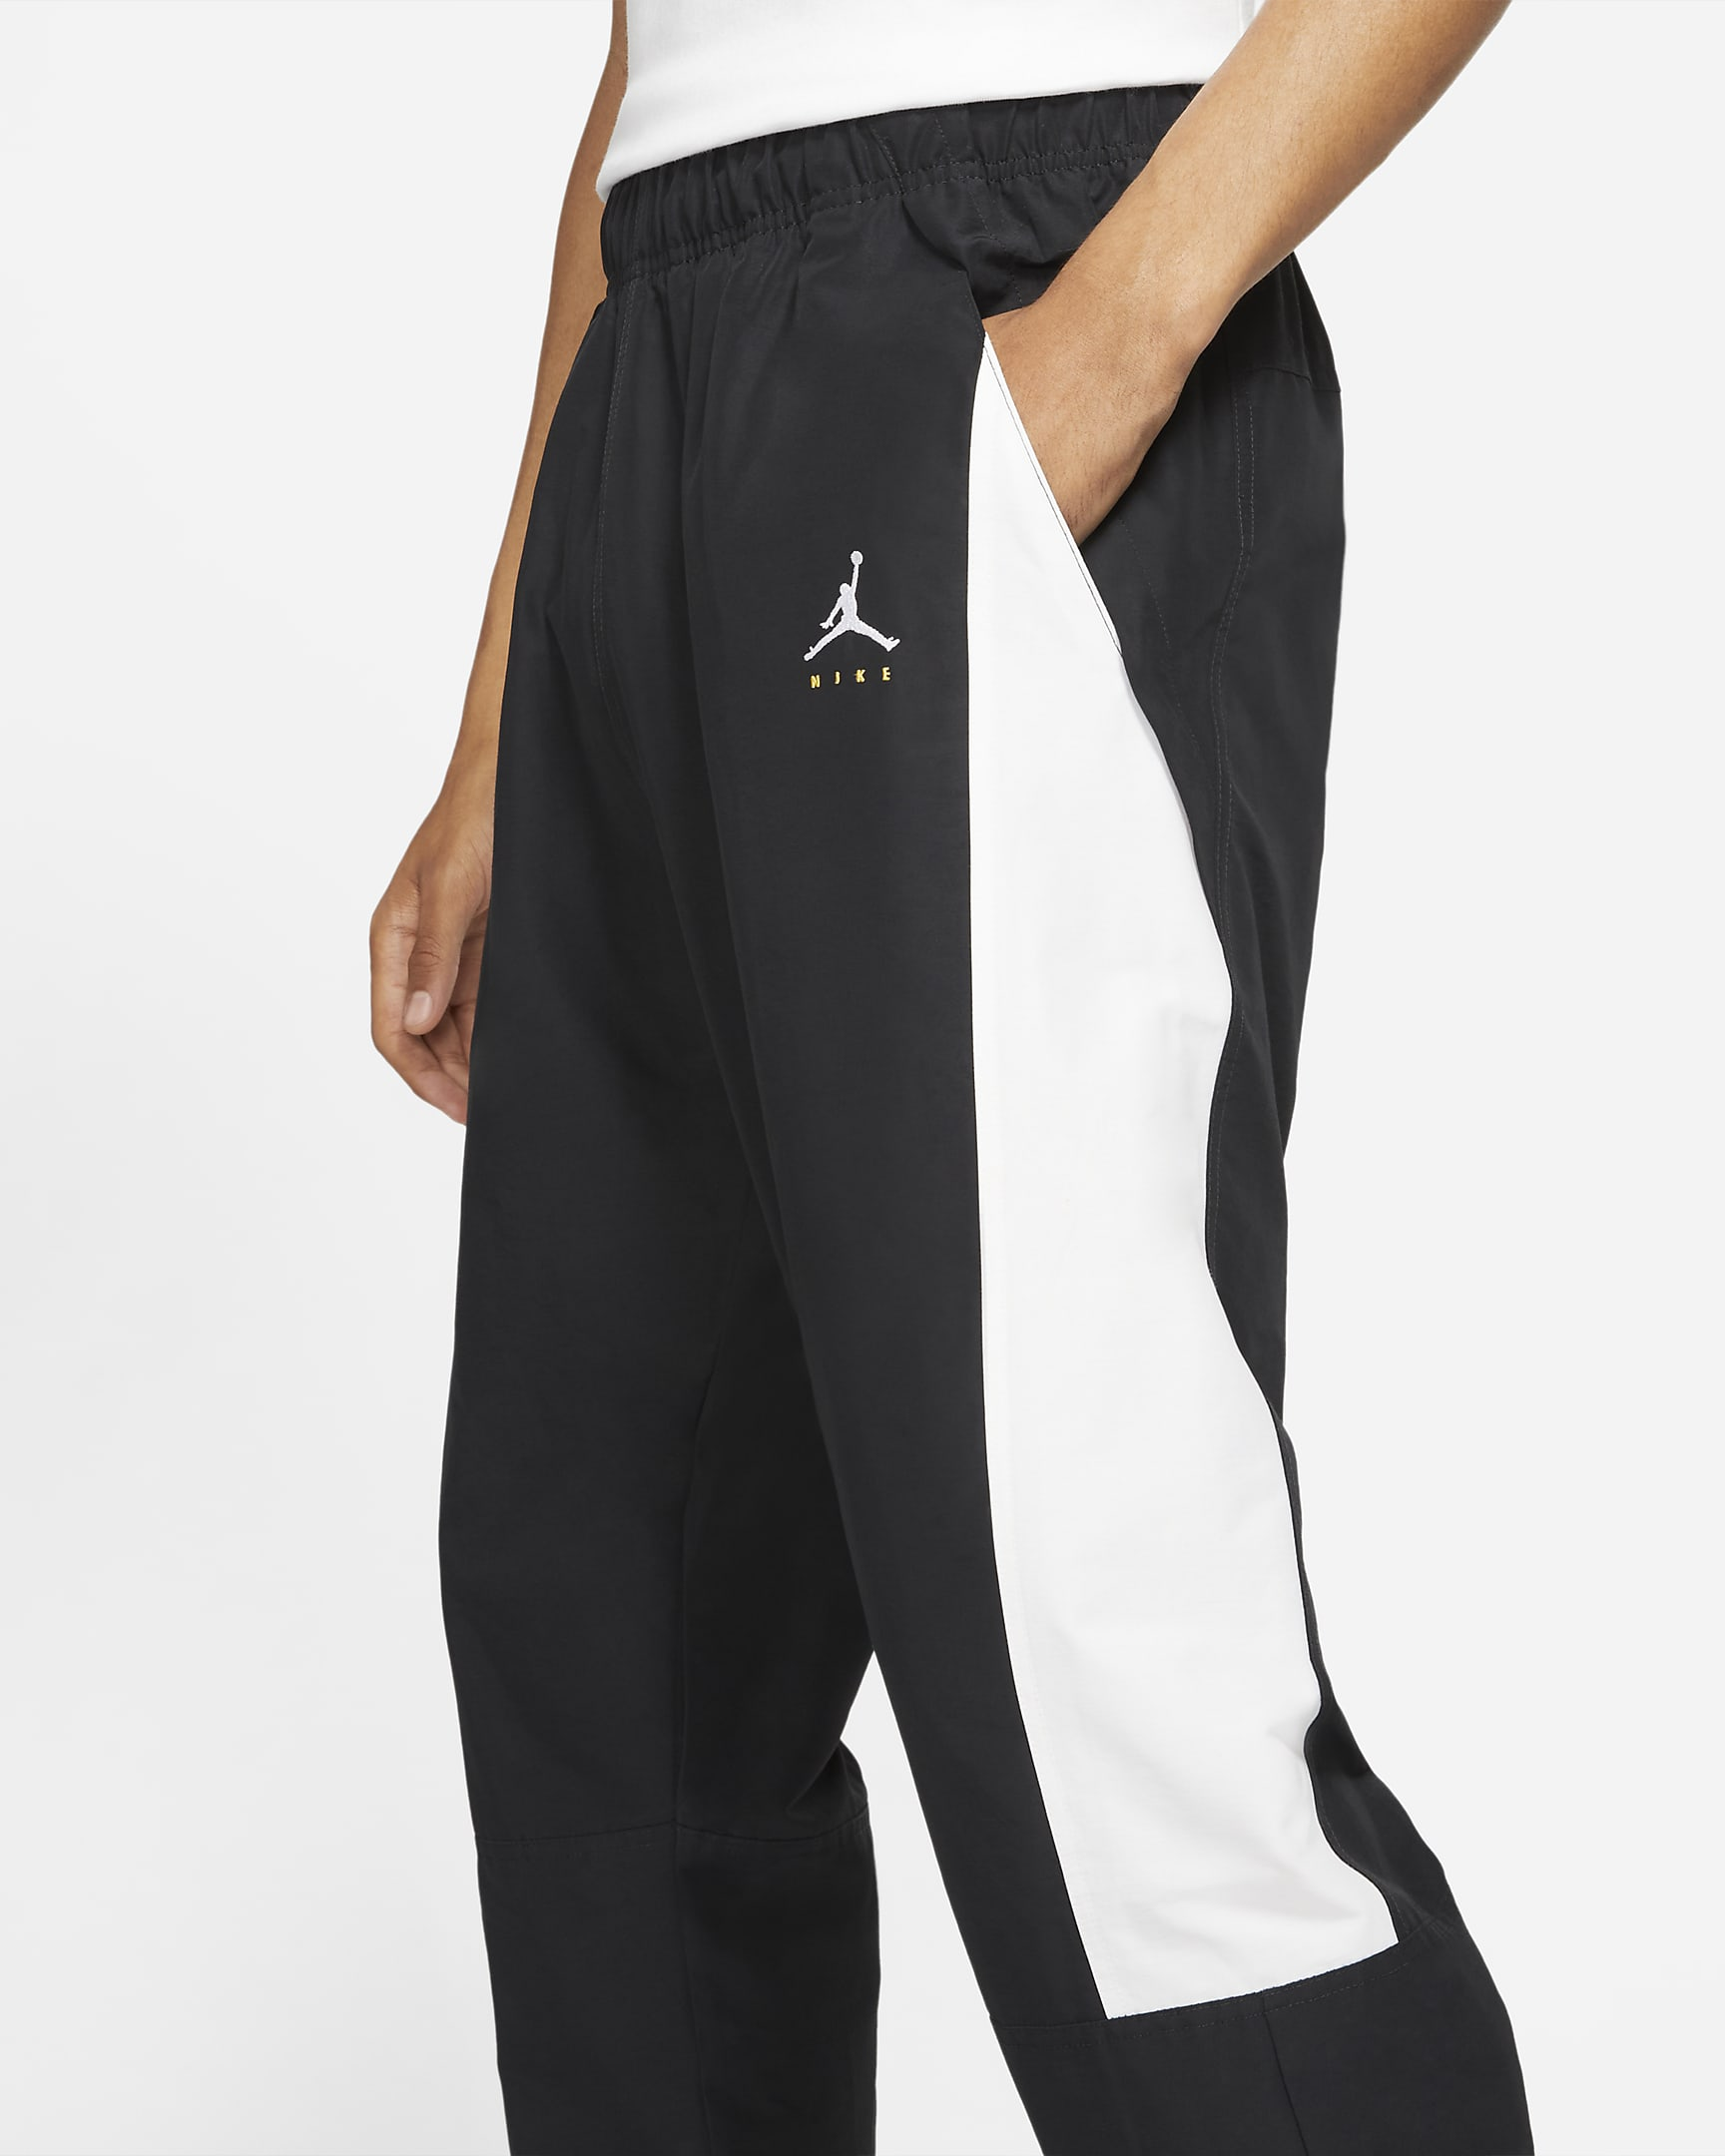 cheap jordans and nike basketball shoes for women